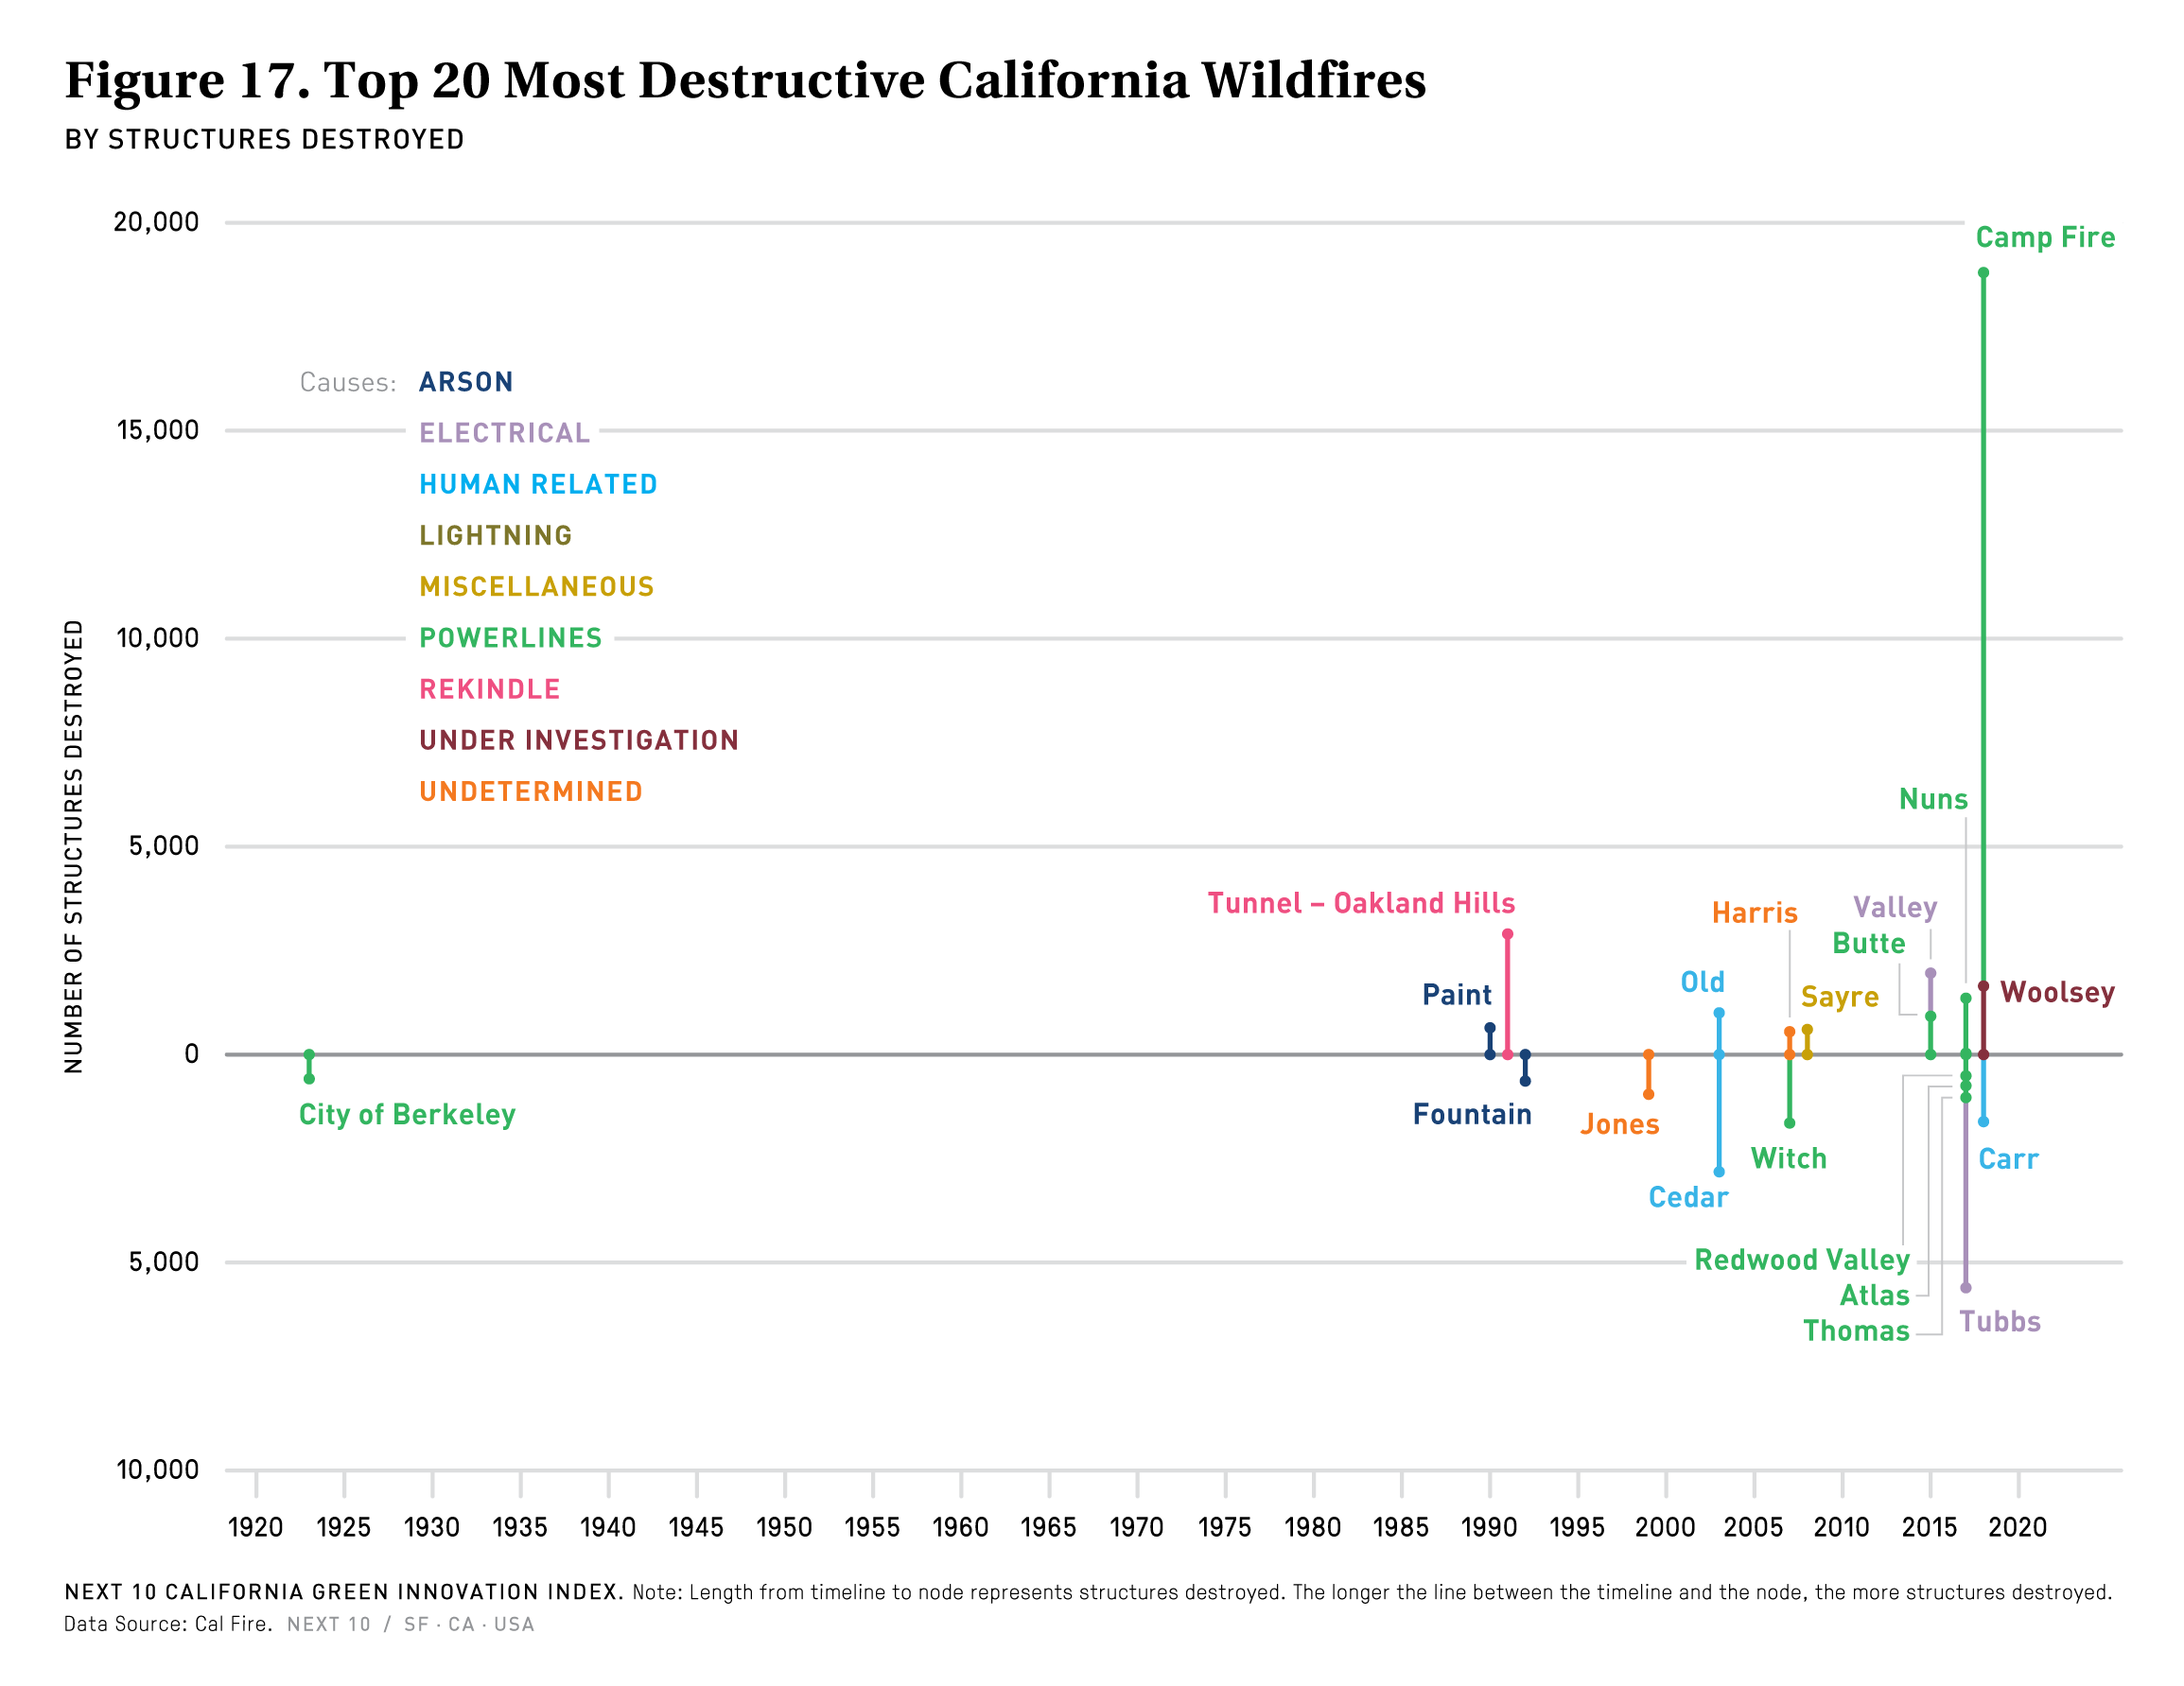 Figure 17. Top 20 Most Destructive California Wildfires & Cause